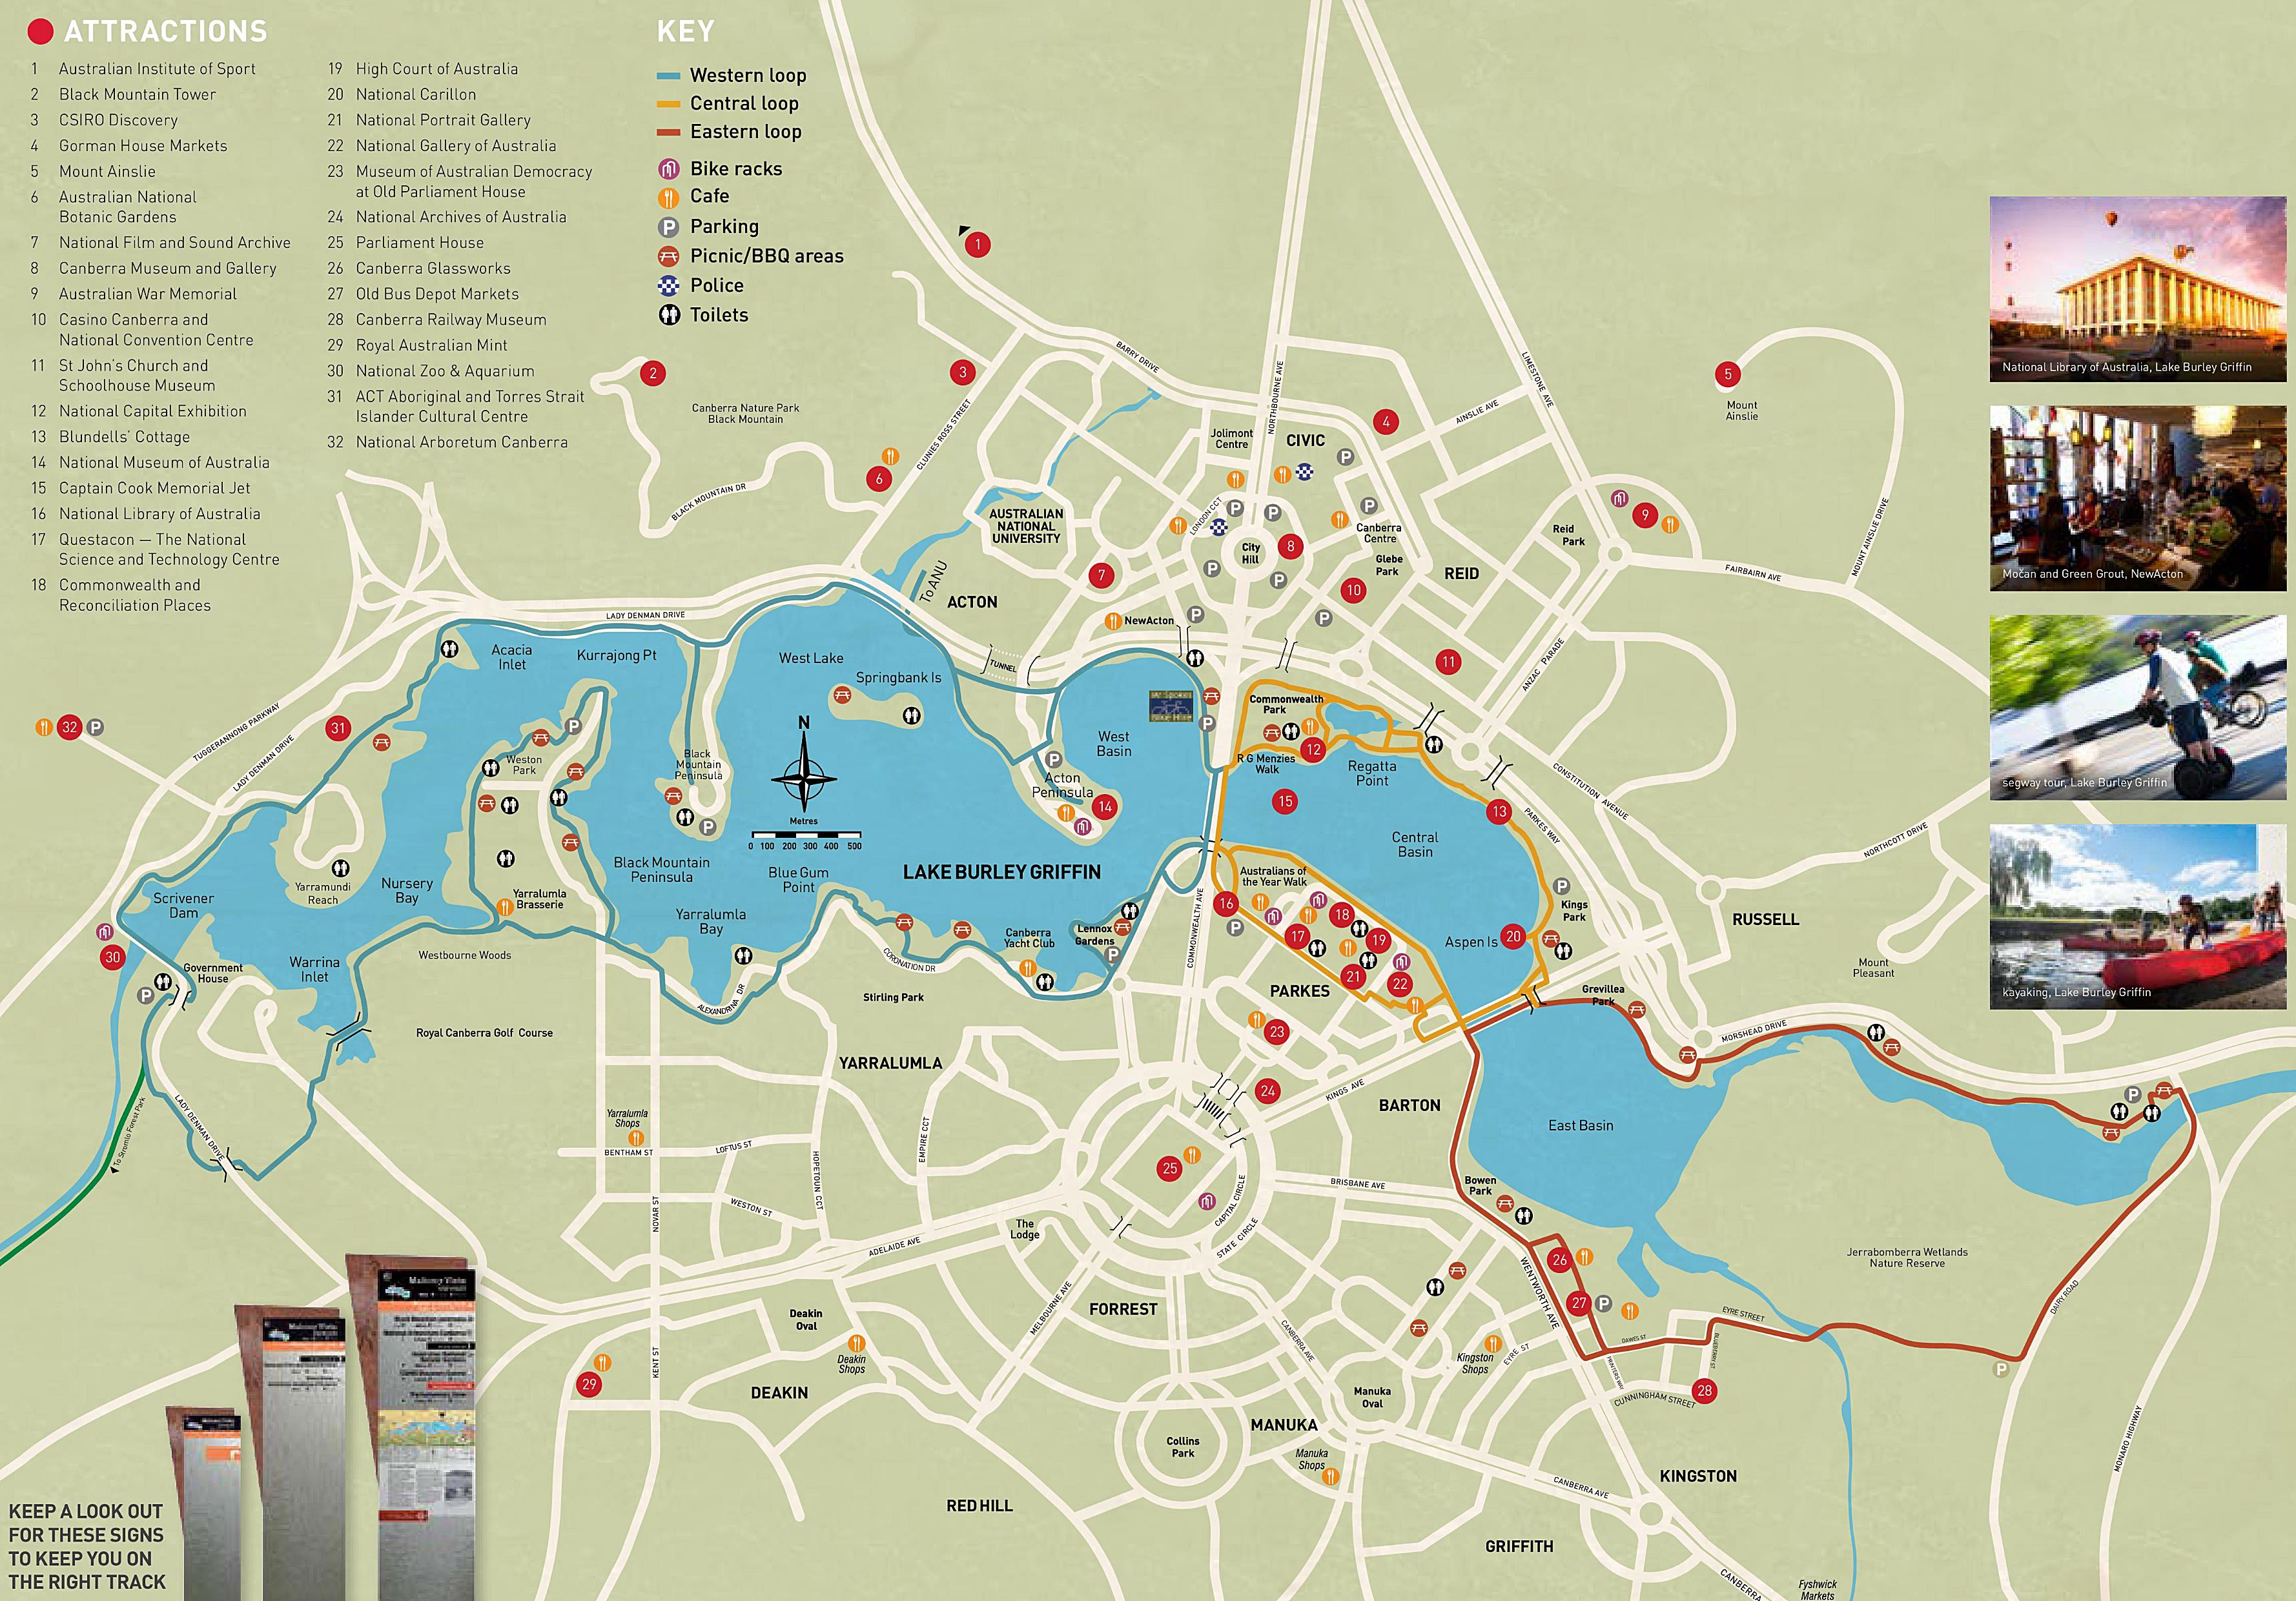 Map Of Canberra Large Canberra Maps For Free Download And Print High Resolution